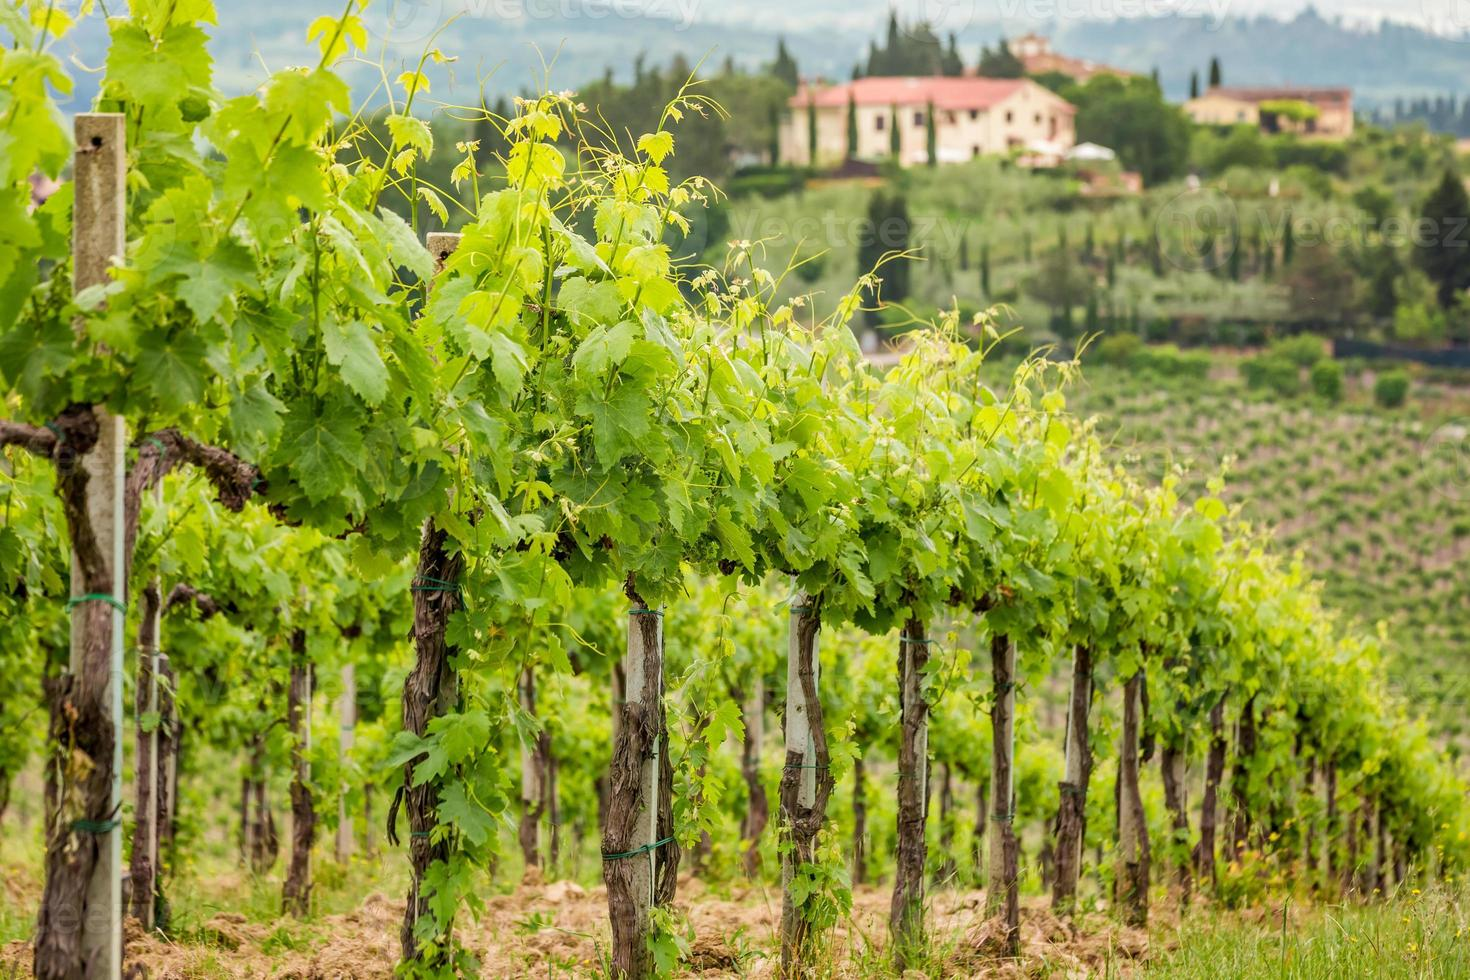 Field of vines in Tuscany photo